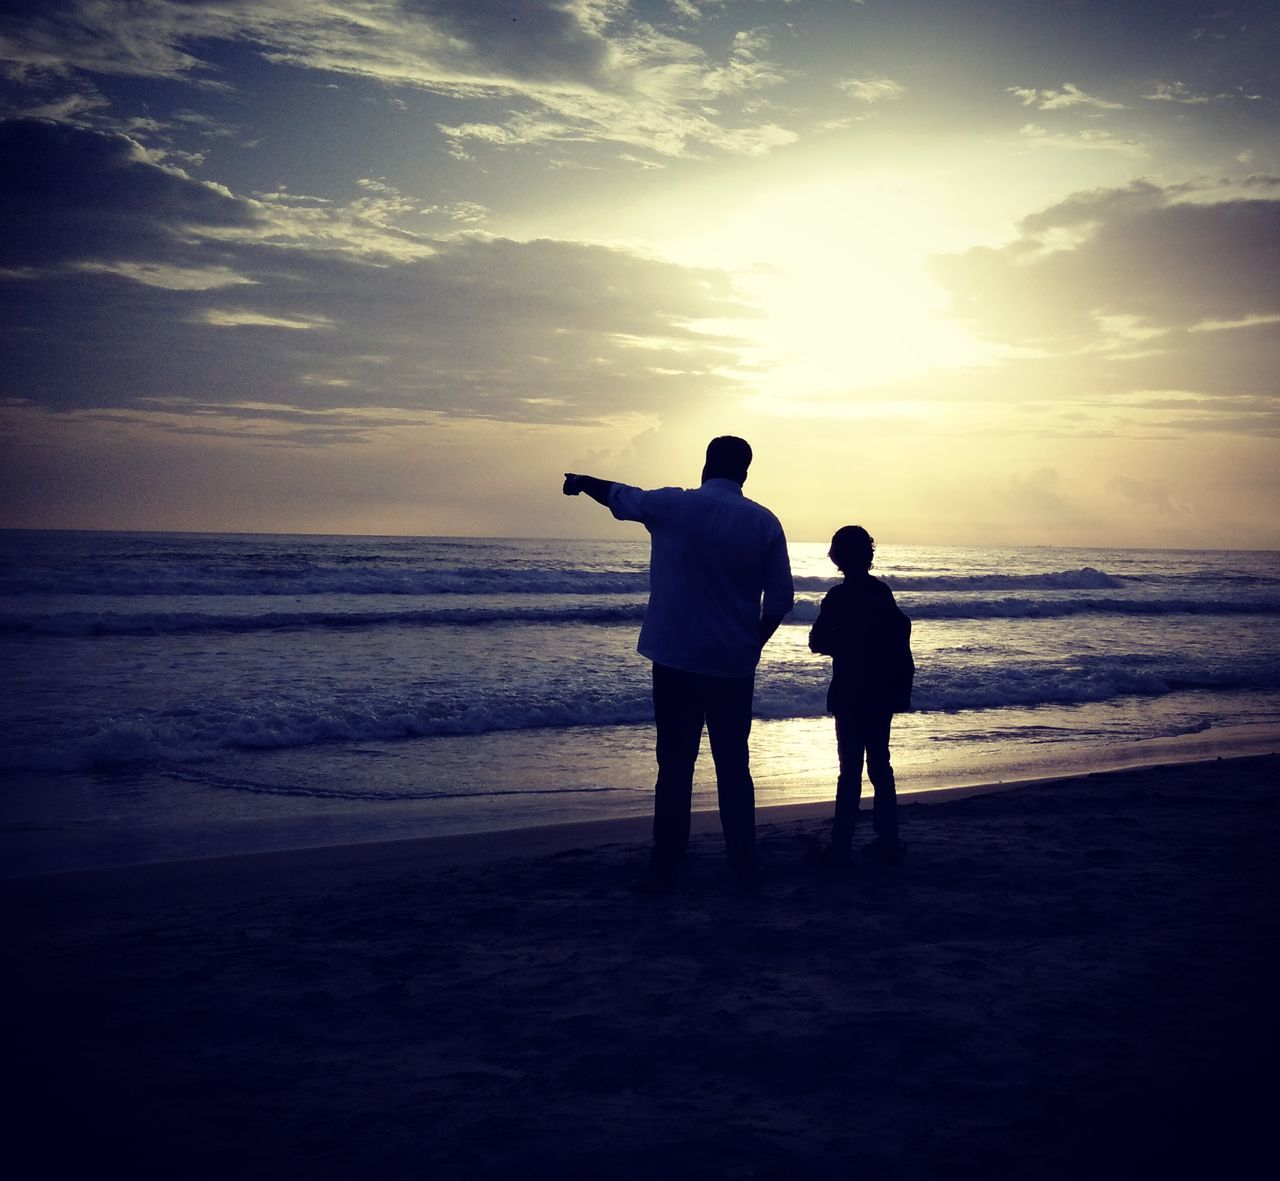 sea, beach, sunset, horizon over water, silhouette, sky, nature, water, togetherness, two people, scenics, sand, standing, beauty in nature, tranquil scene, real people, vacations, leisure activity, love, men, outdoors, full length, bonding, childhood, friendship, day, people